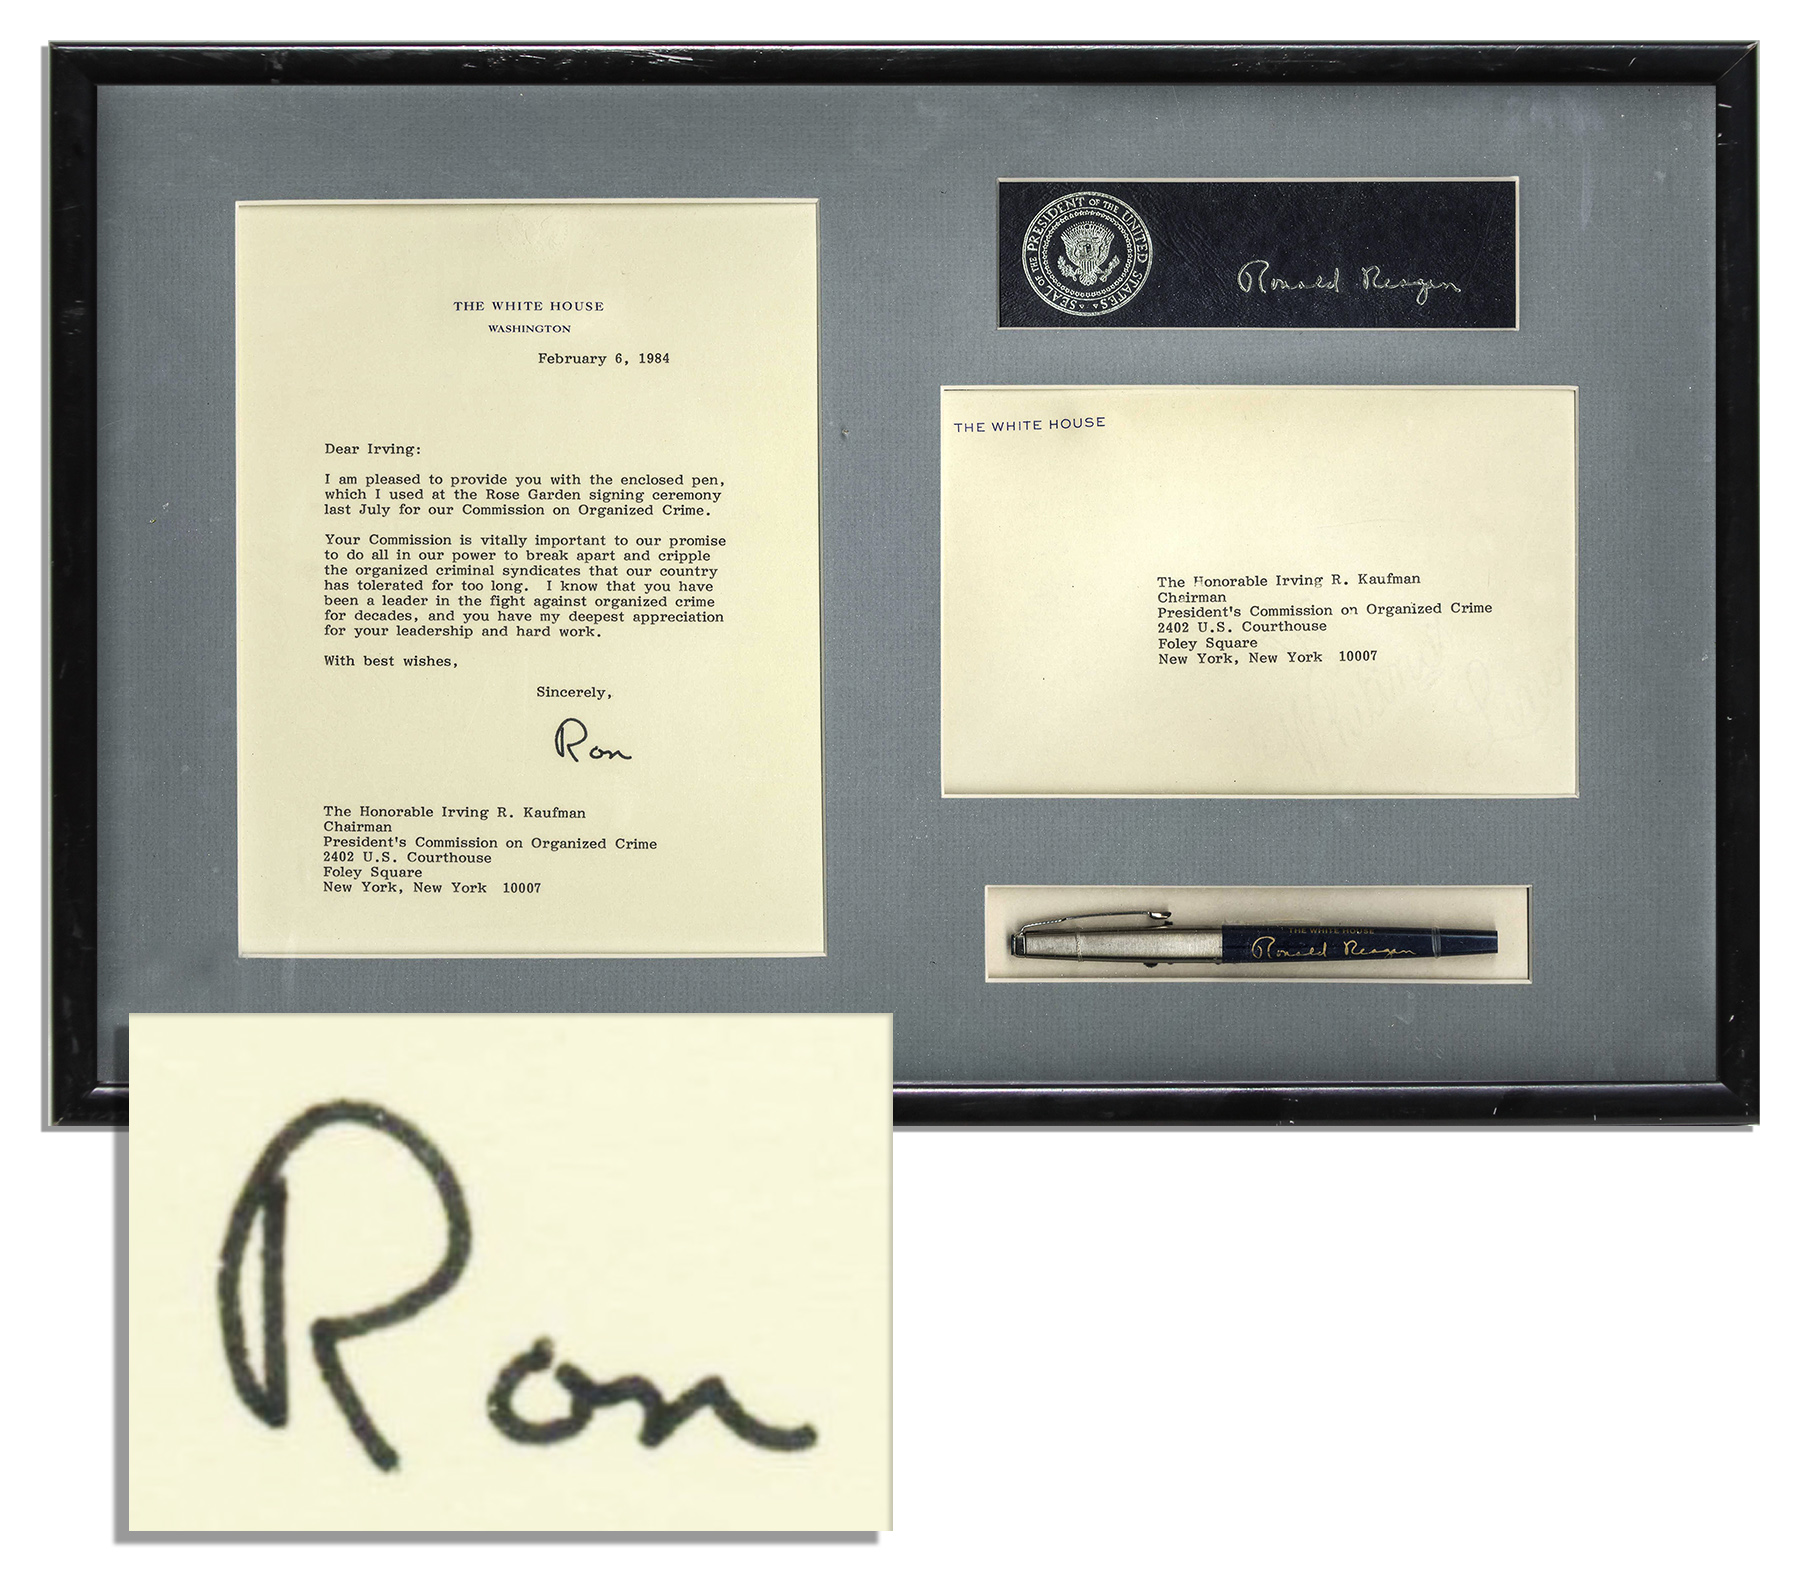 White House Pen Ronald Reagan Personally Owned & Used Pen -- Used to Sign the President's Commission on Organized Crime Important Executive Order